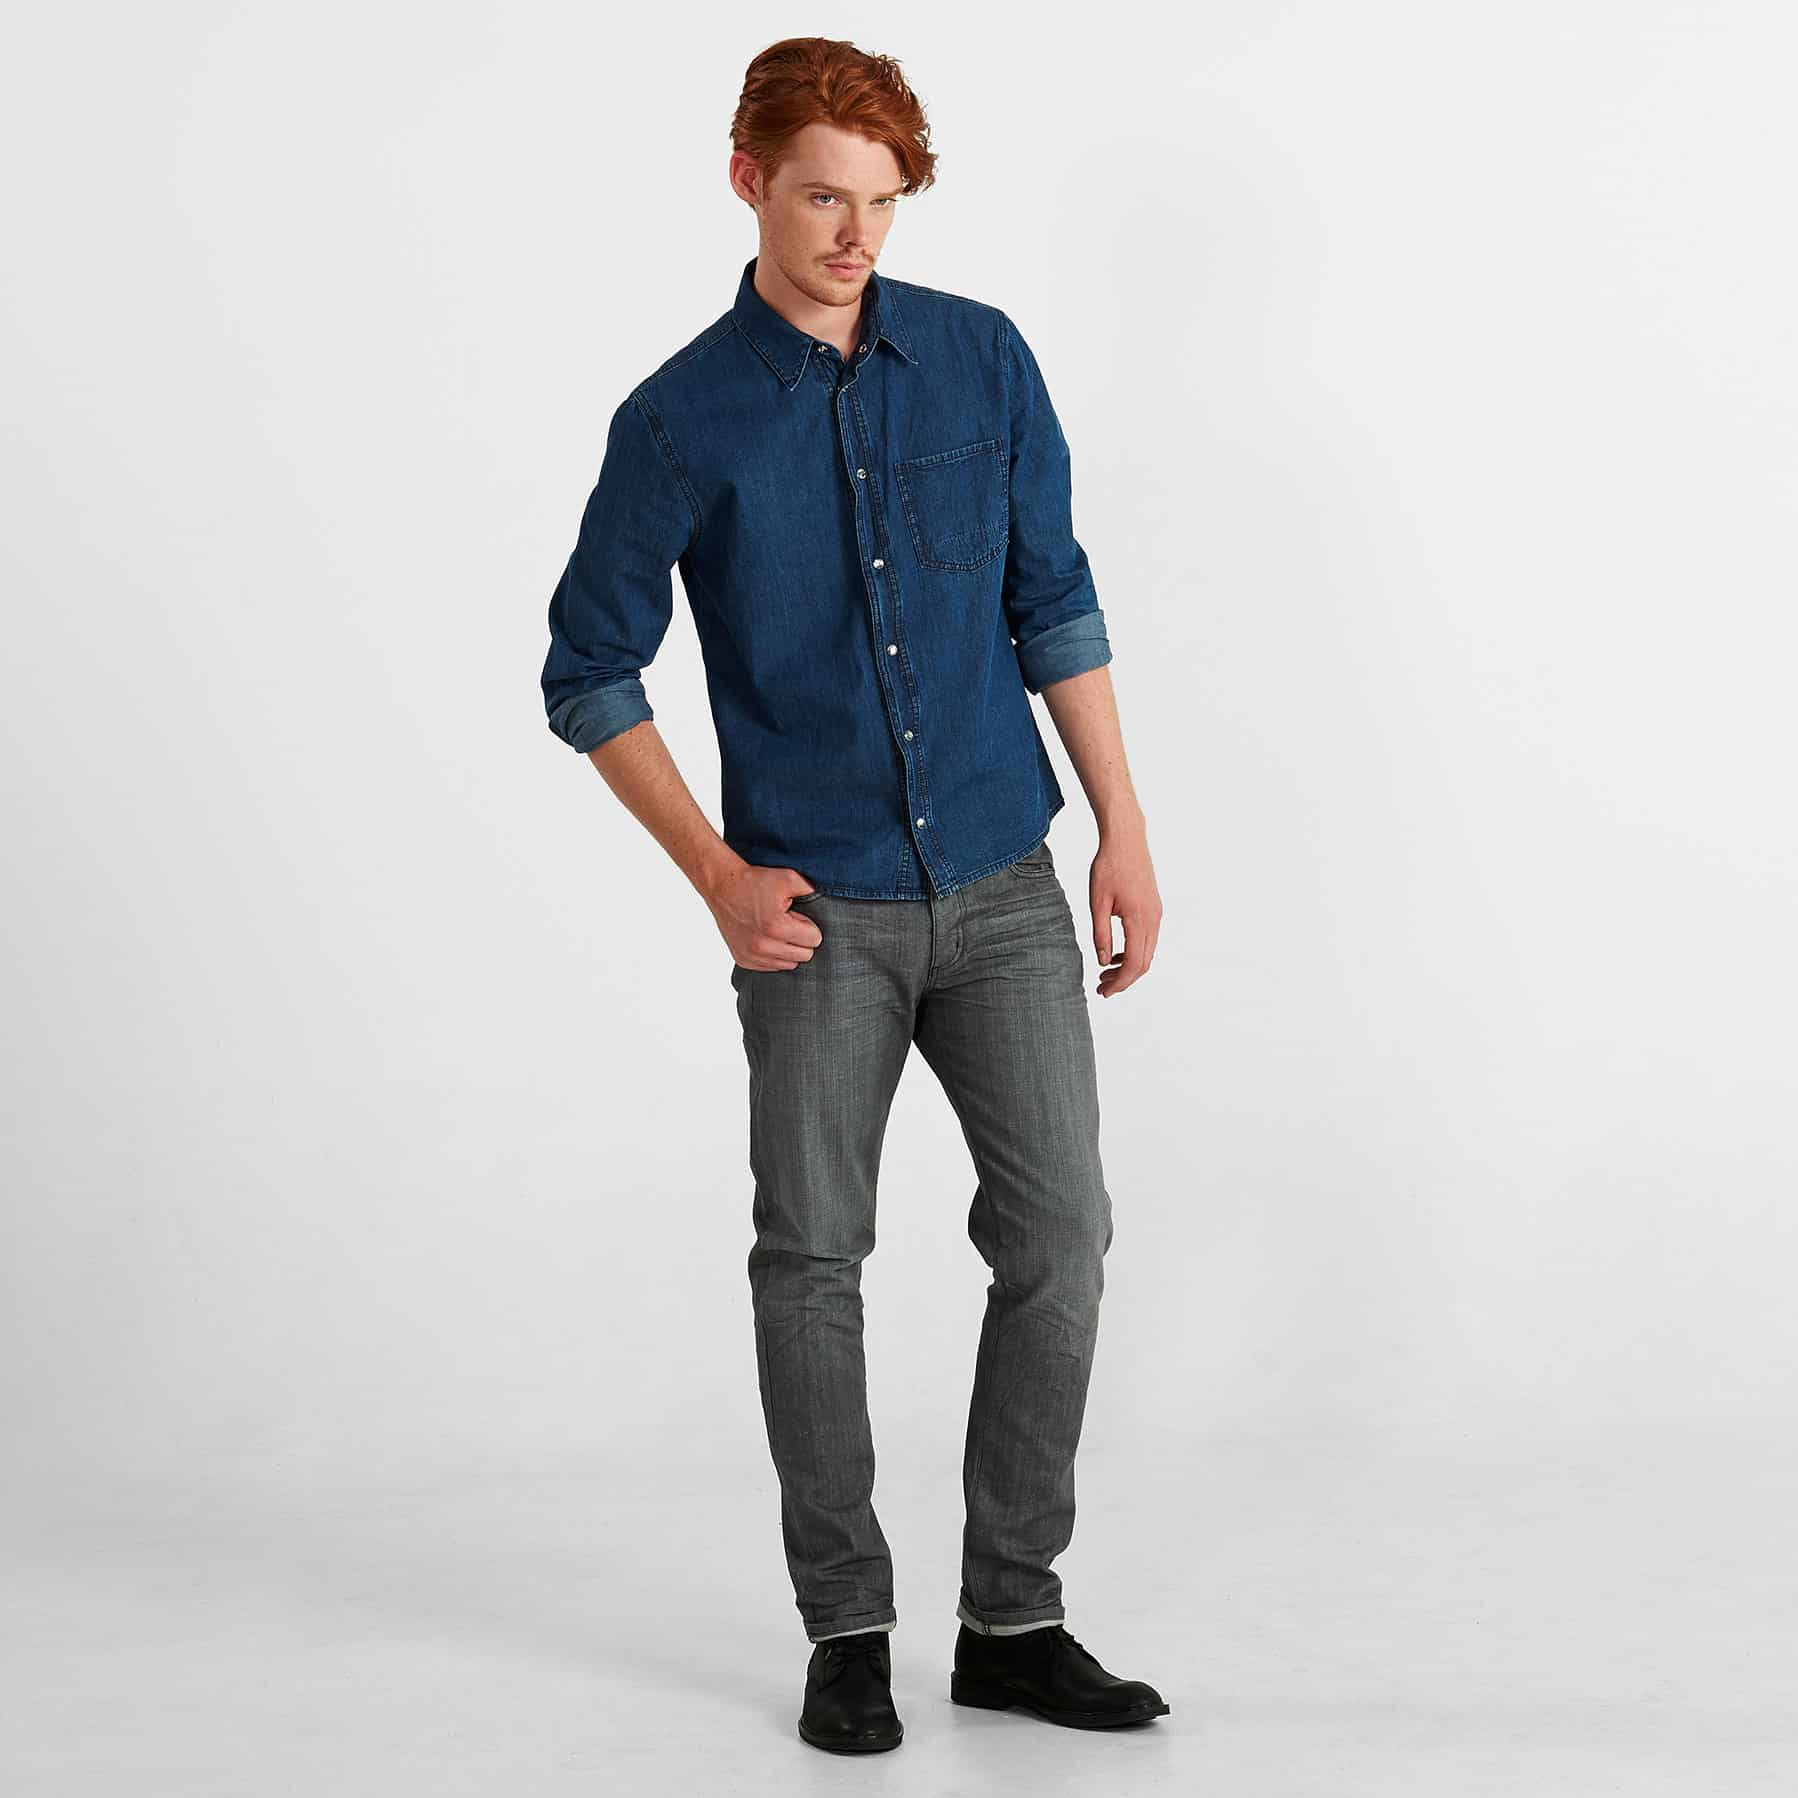 Vintage Laundry ARLO Jean – Washed Grey (MJ3001.S.12)